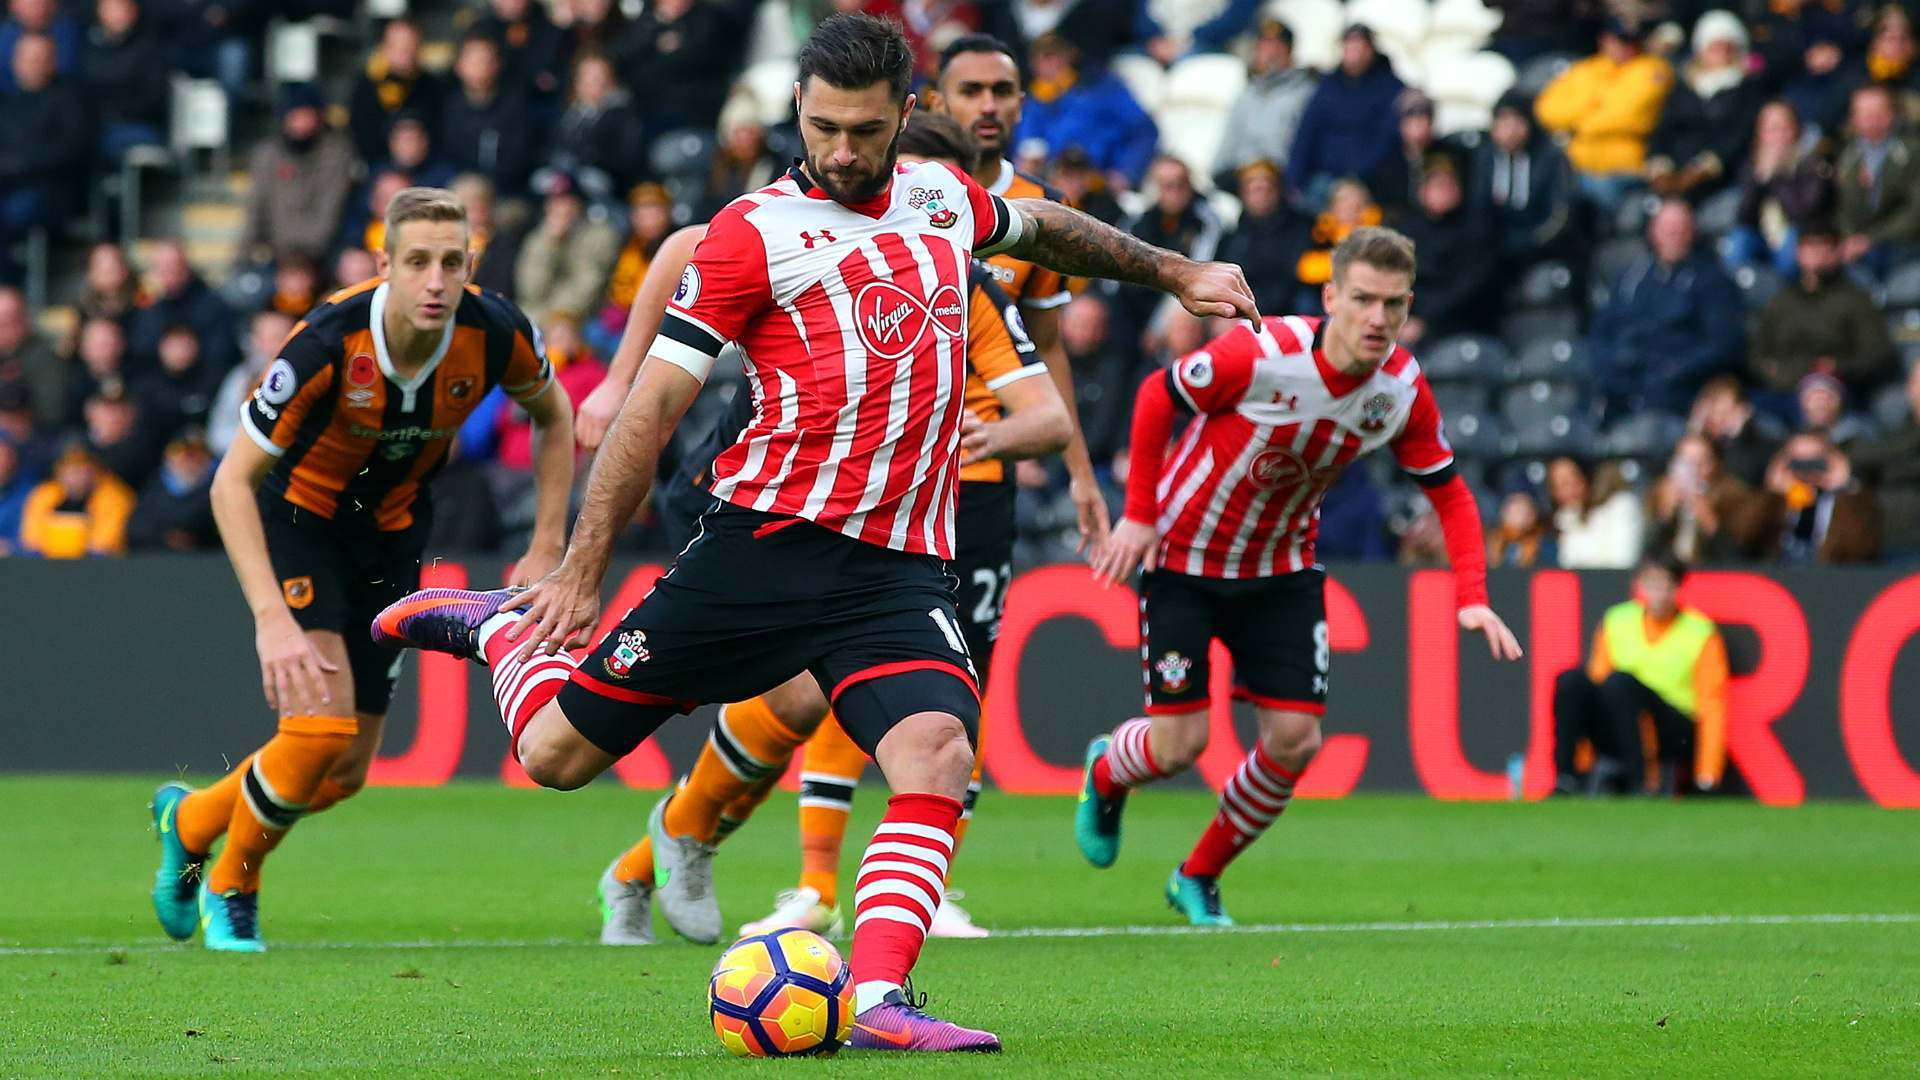 Prediksi Skor Southampton vs Hull City 29 April 2017